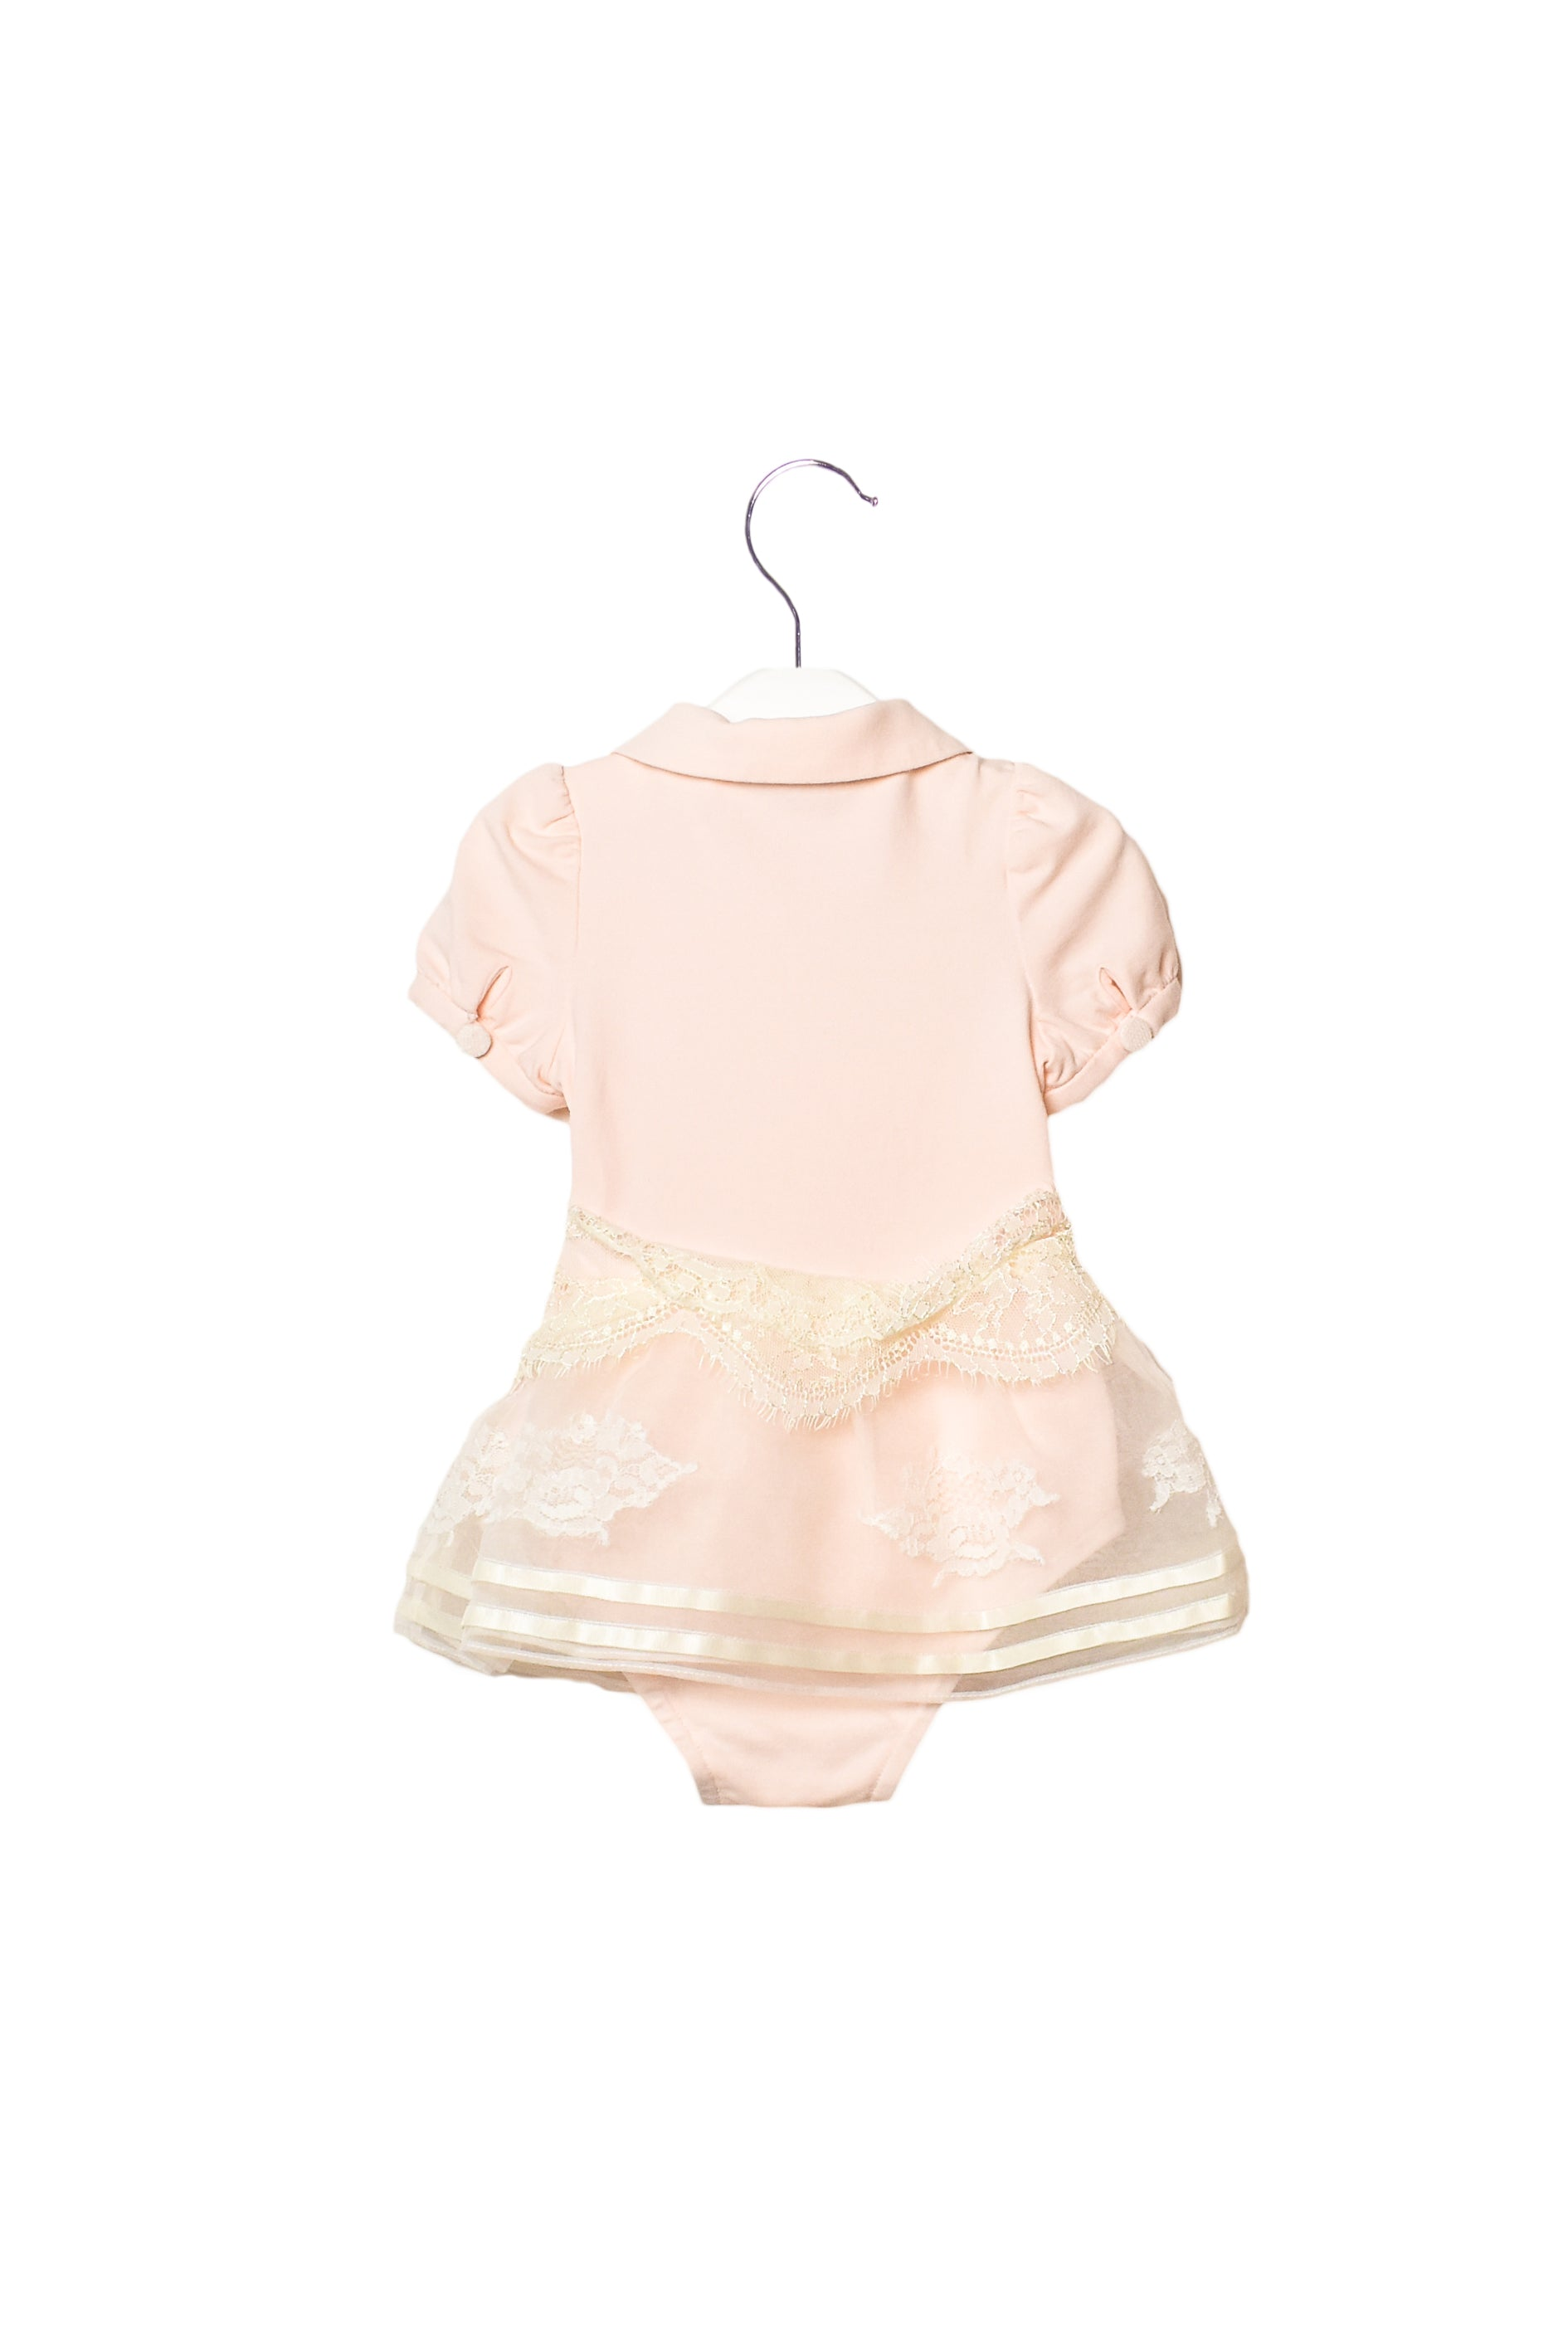 10008606 Nicholas & Bears Baby~Romper Dress 3M at Retykle